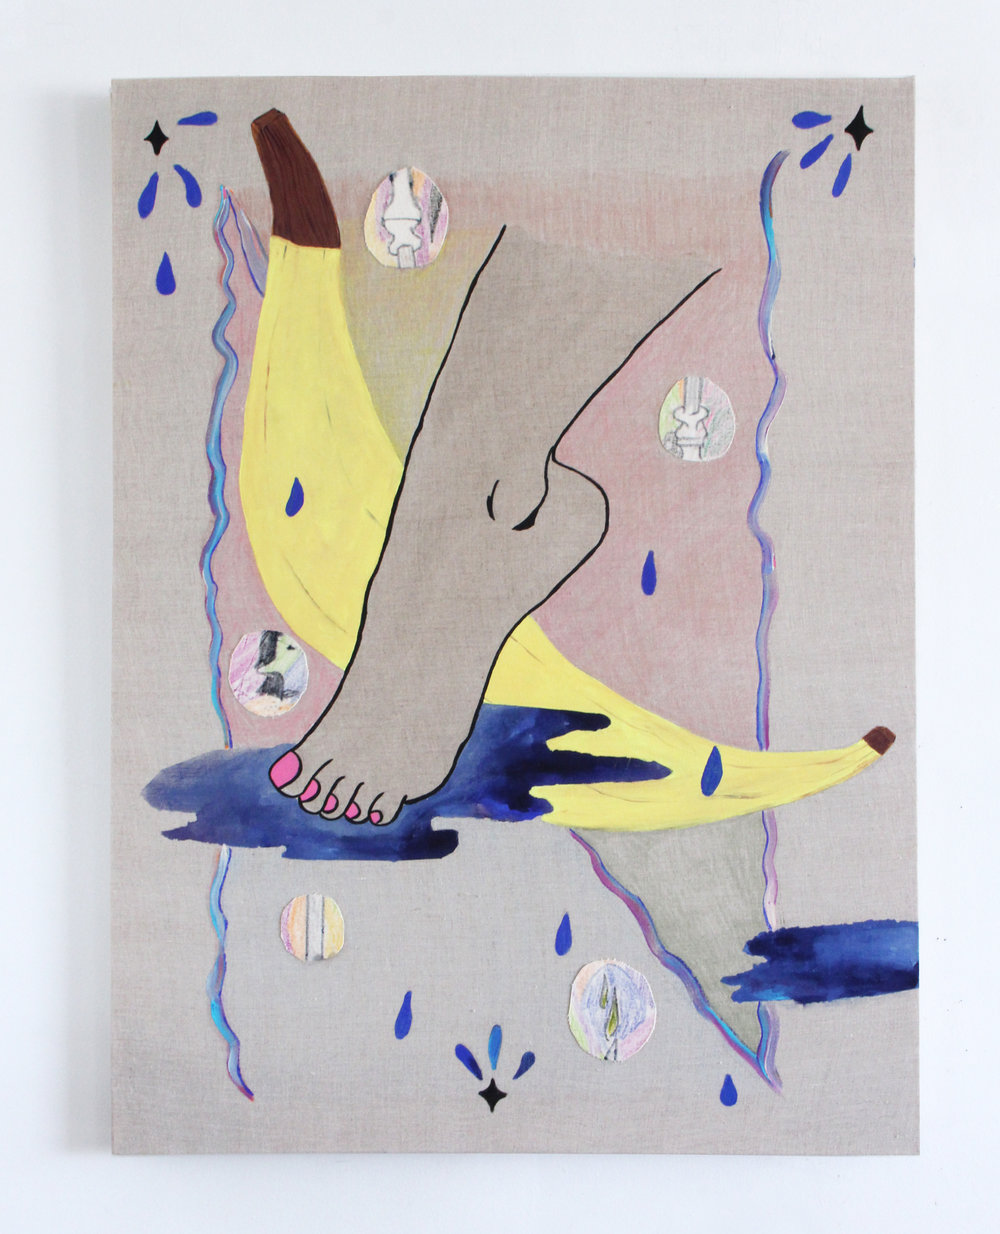 """Jamie Felton, """"Foot, Puddle, Banana"""", 30 x 40 in, Ink and acrylic on linen, 2017"""